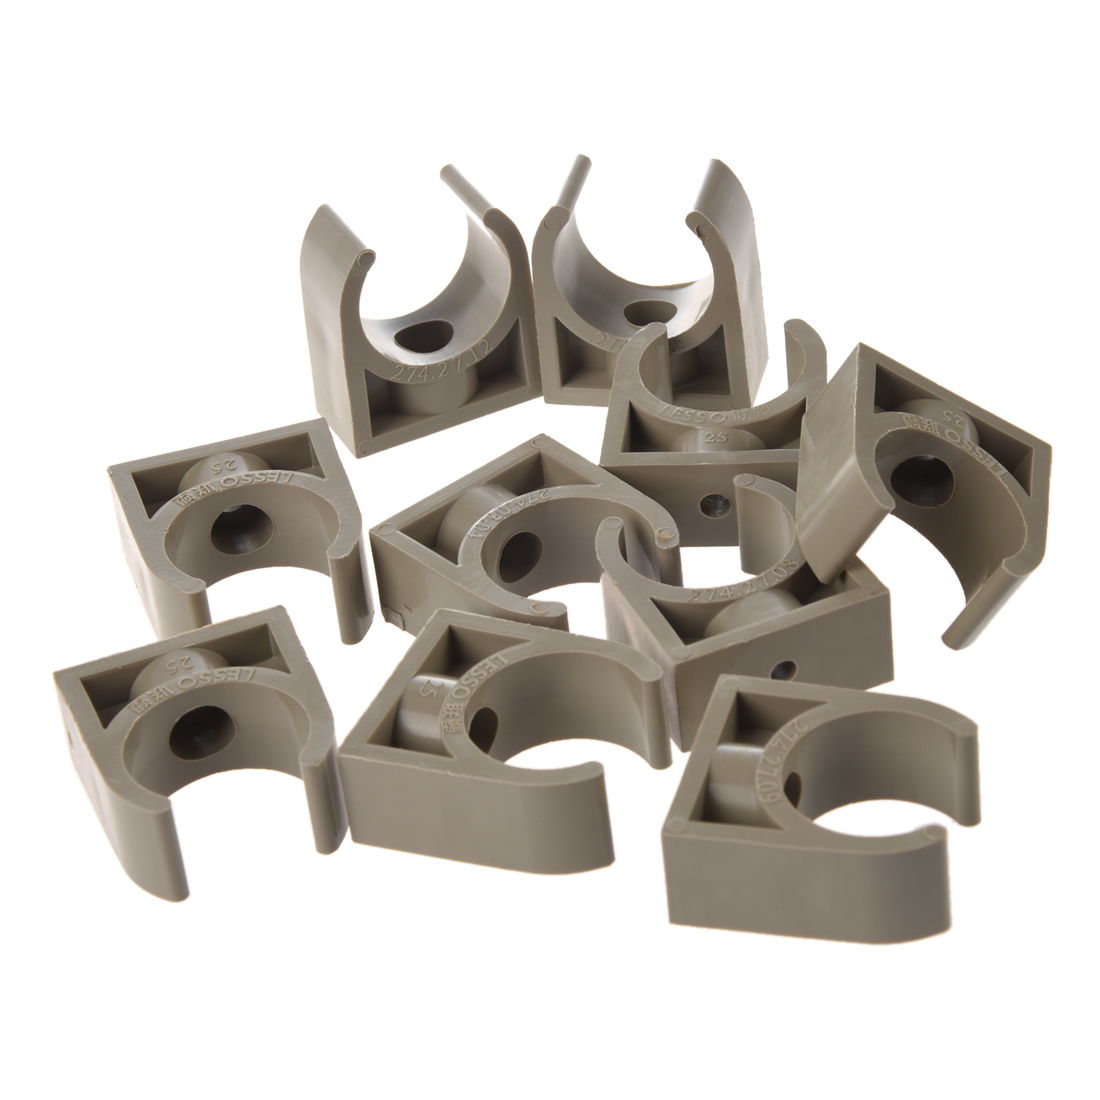 10 Pcs 25mm Diameter PPR Water Supply Pipe Clamps Clips Fittings